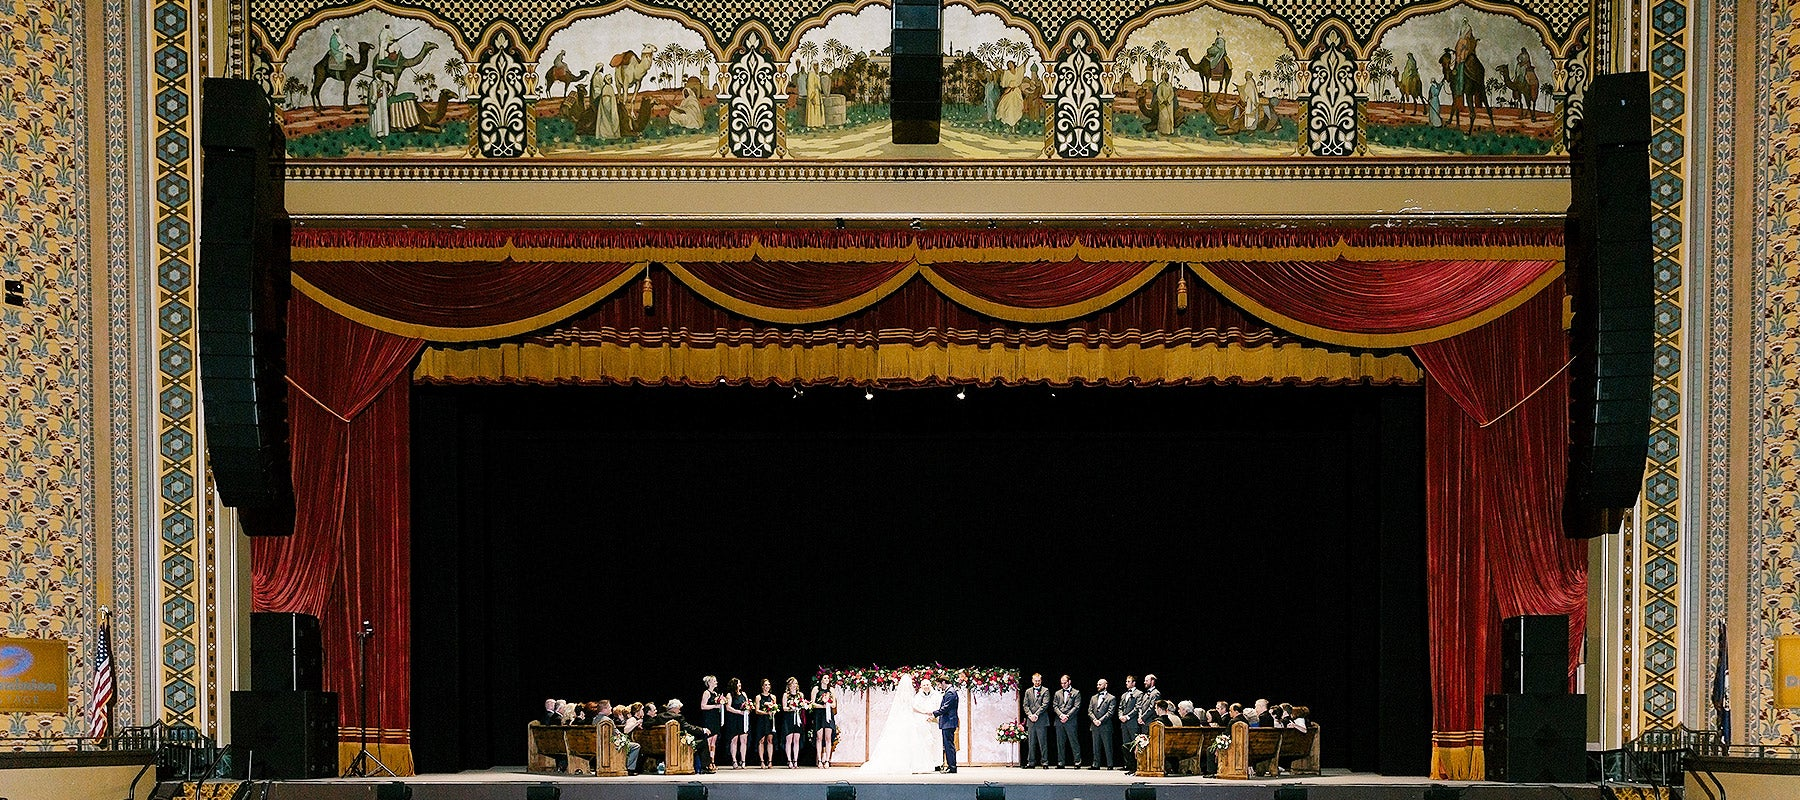 Enjoy This Wedding Video Featuring Altria Theater Our Thanks To White Tree Productions Llc